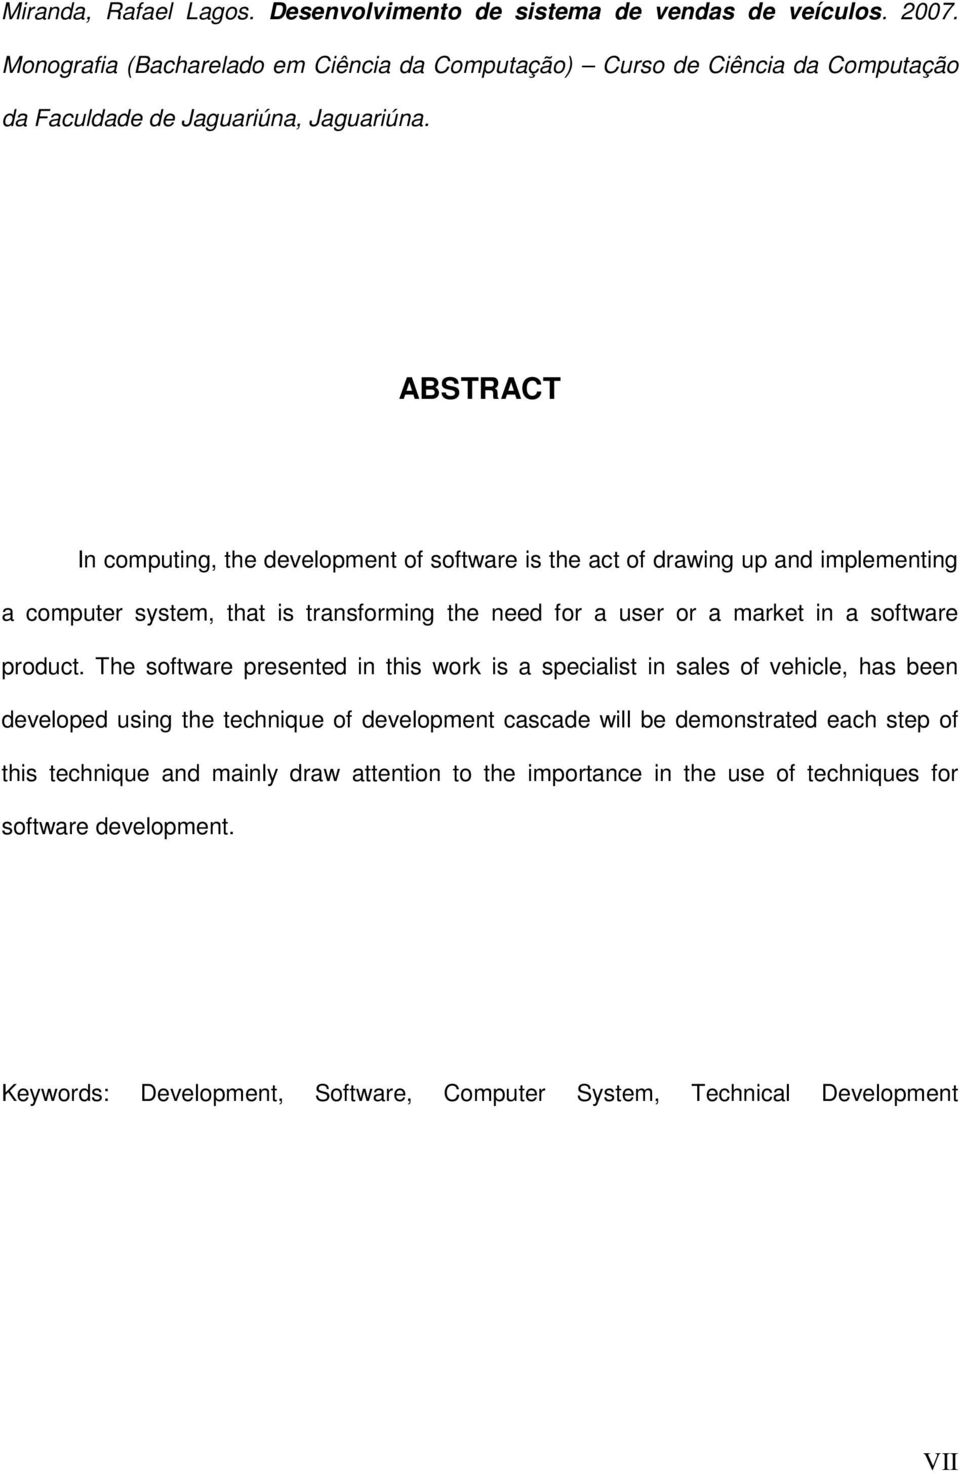 ABSTRACT In computing, the development of software is the act of drawing up and implementing a computer system, that is transforming the need for a user or a market in a software